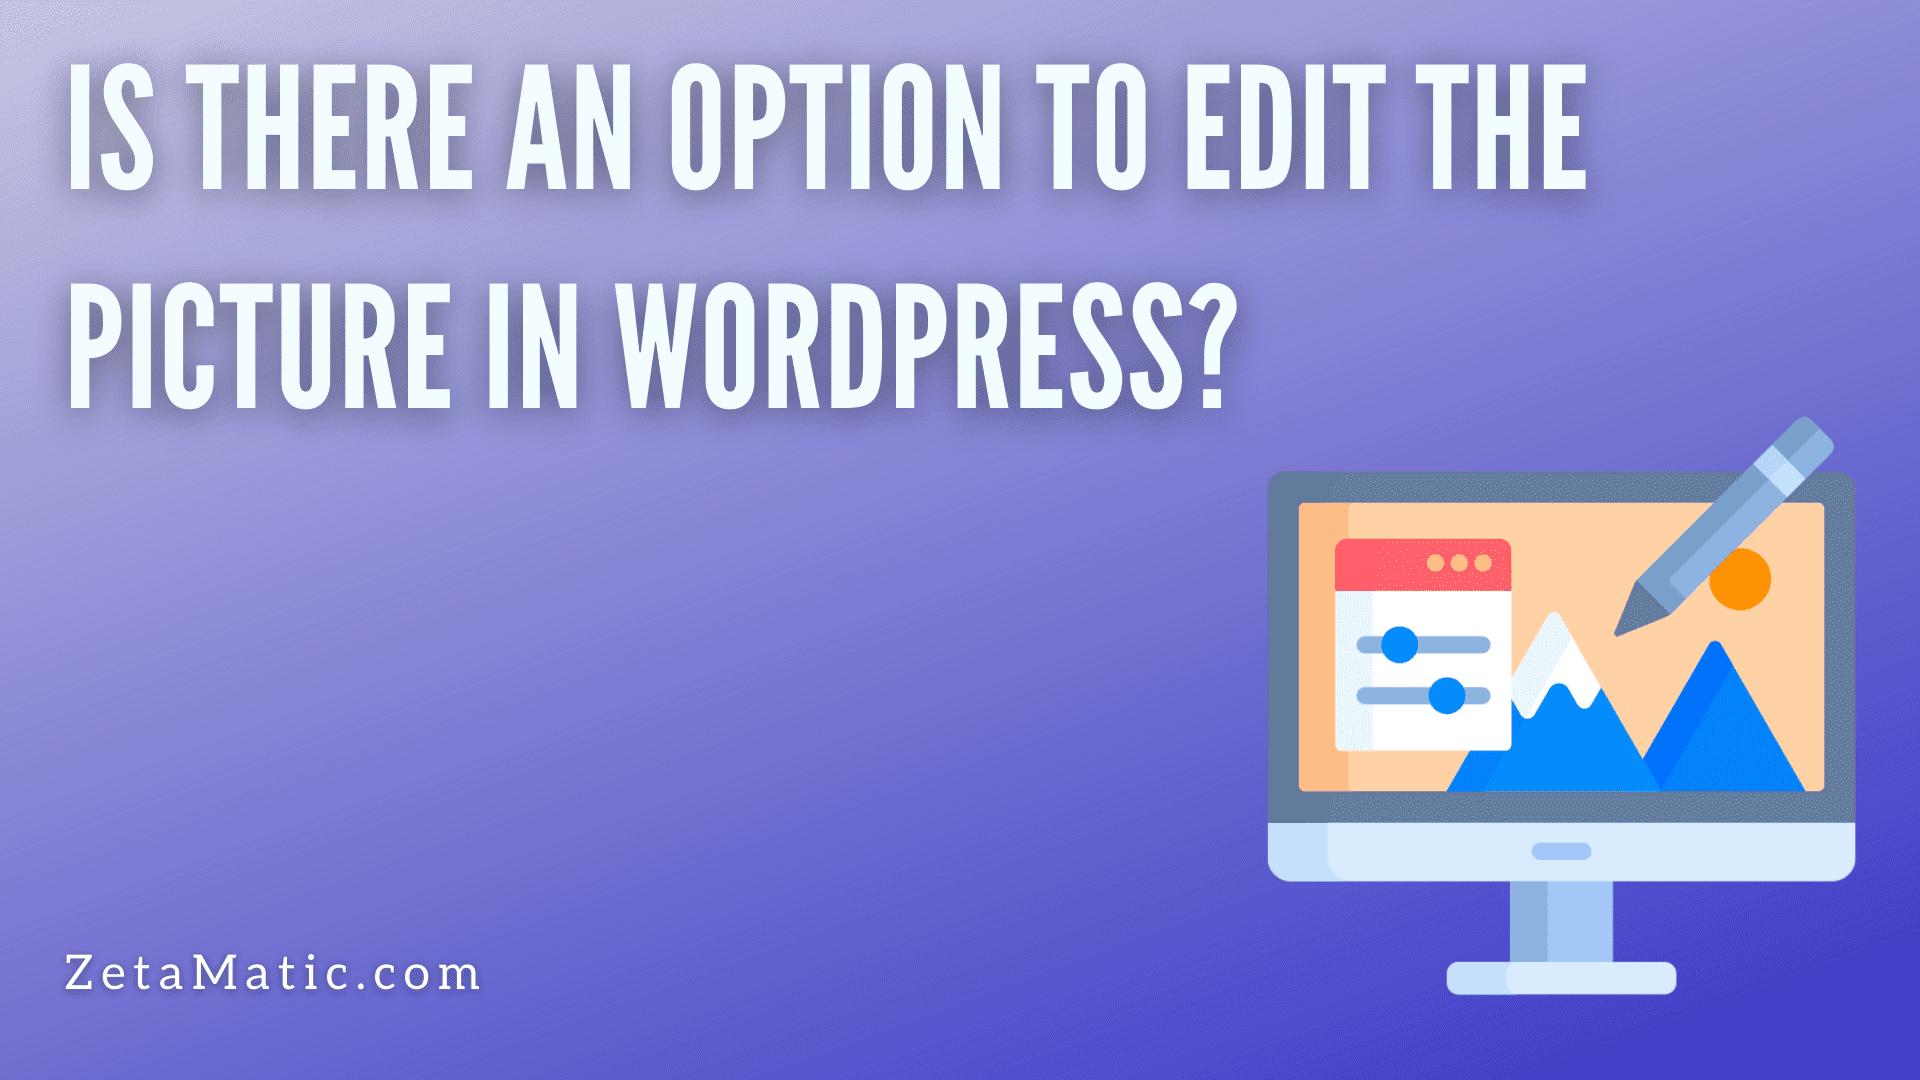 Is there an option to edit the picture in WordPress?